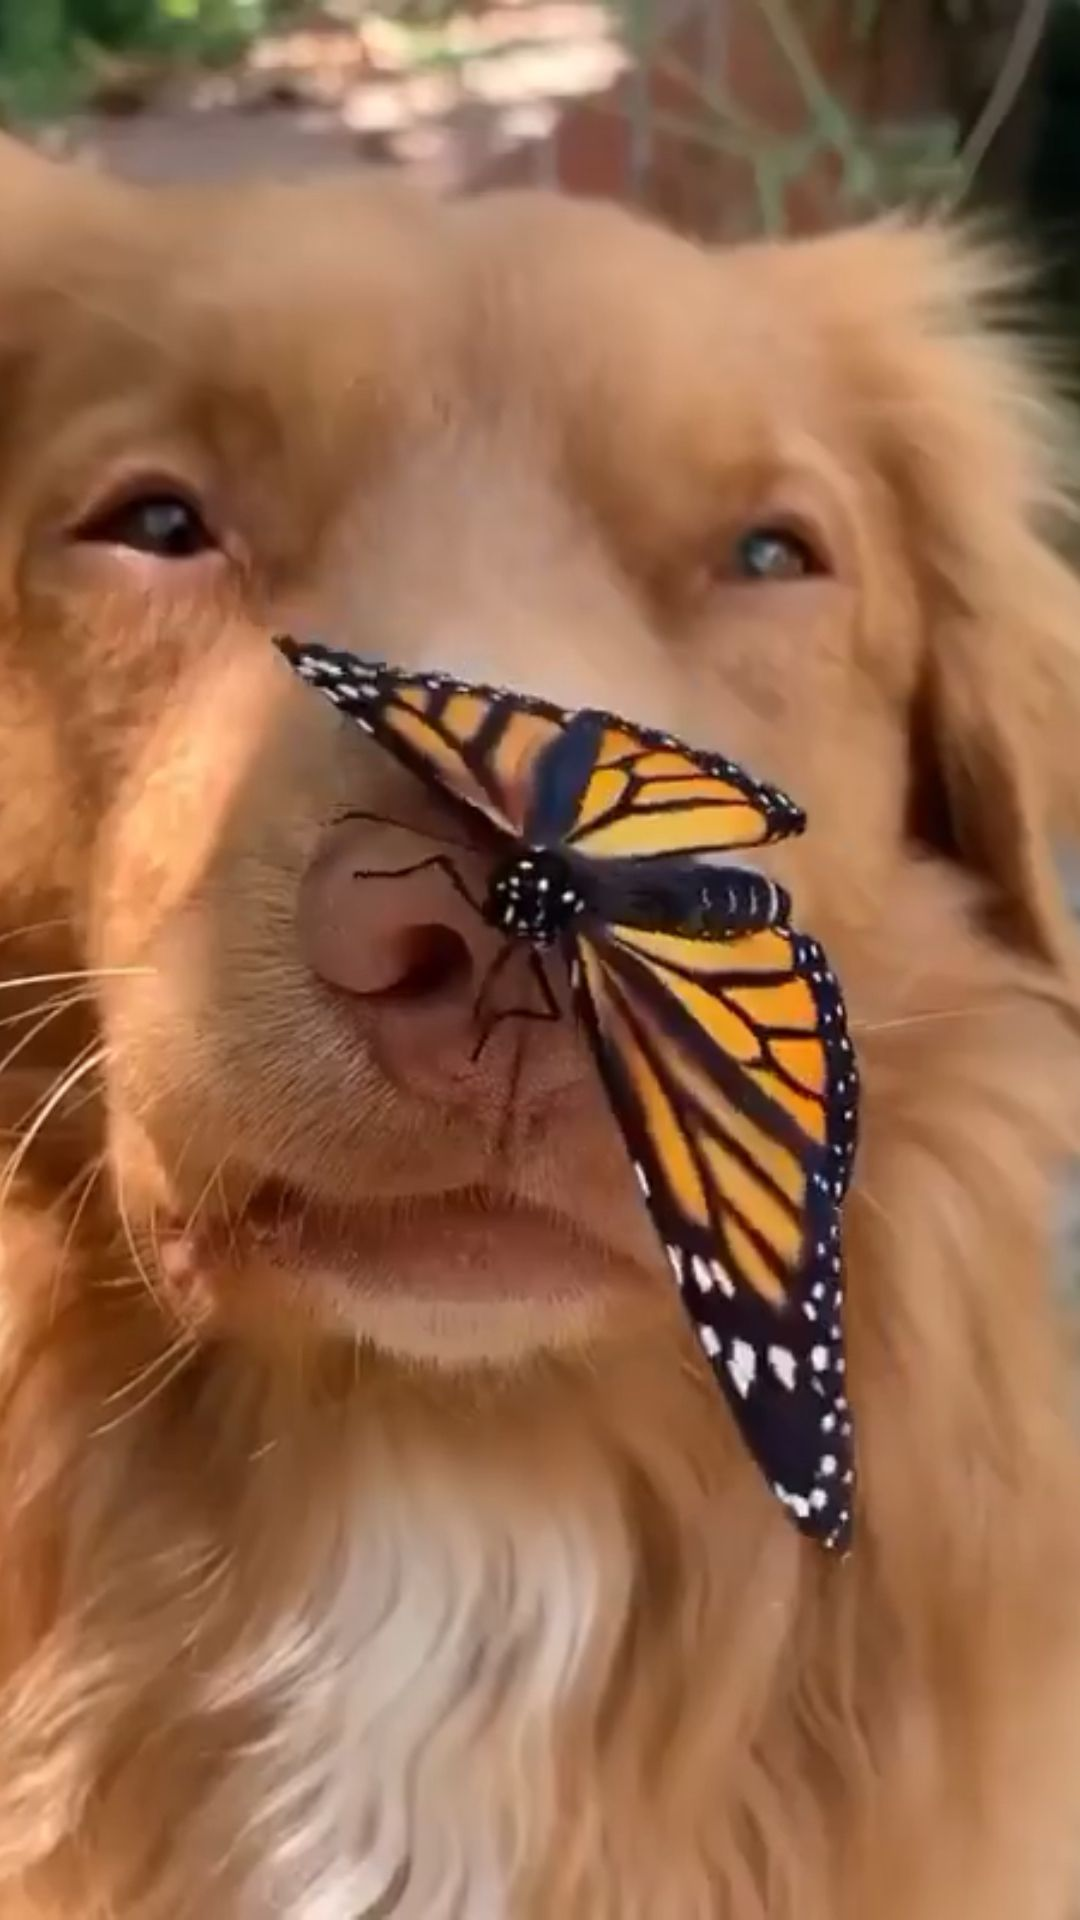 Adorable video of a golden retriever and a butterf